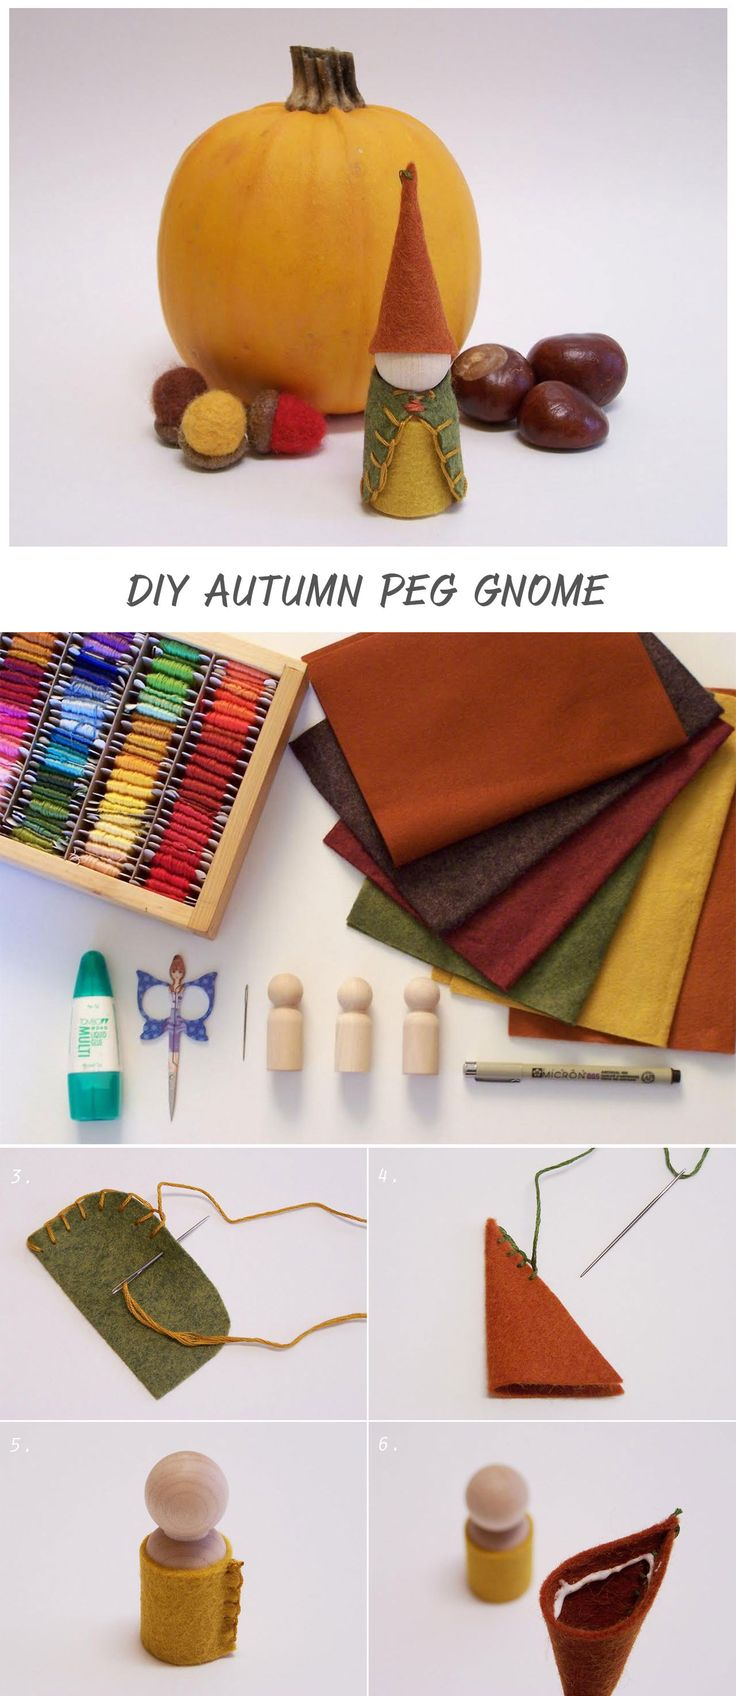 Perfect autumn craft to share with the little makers in our lives...